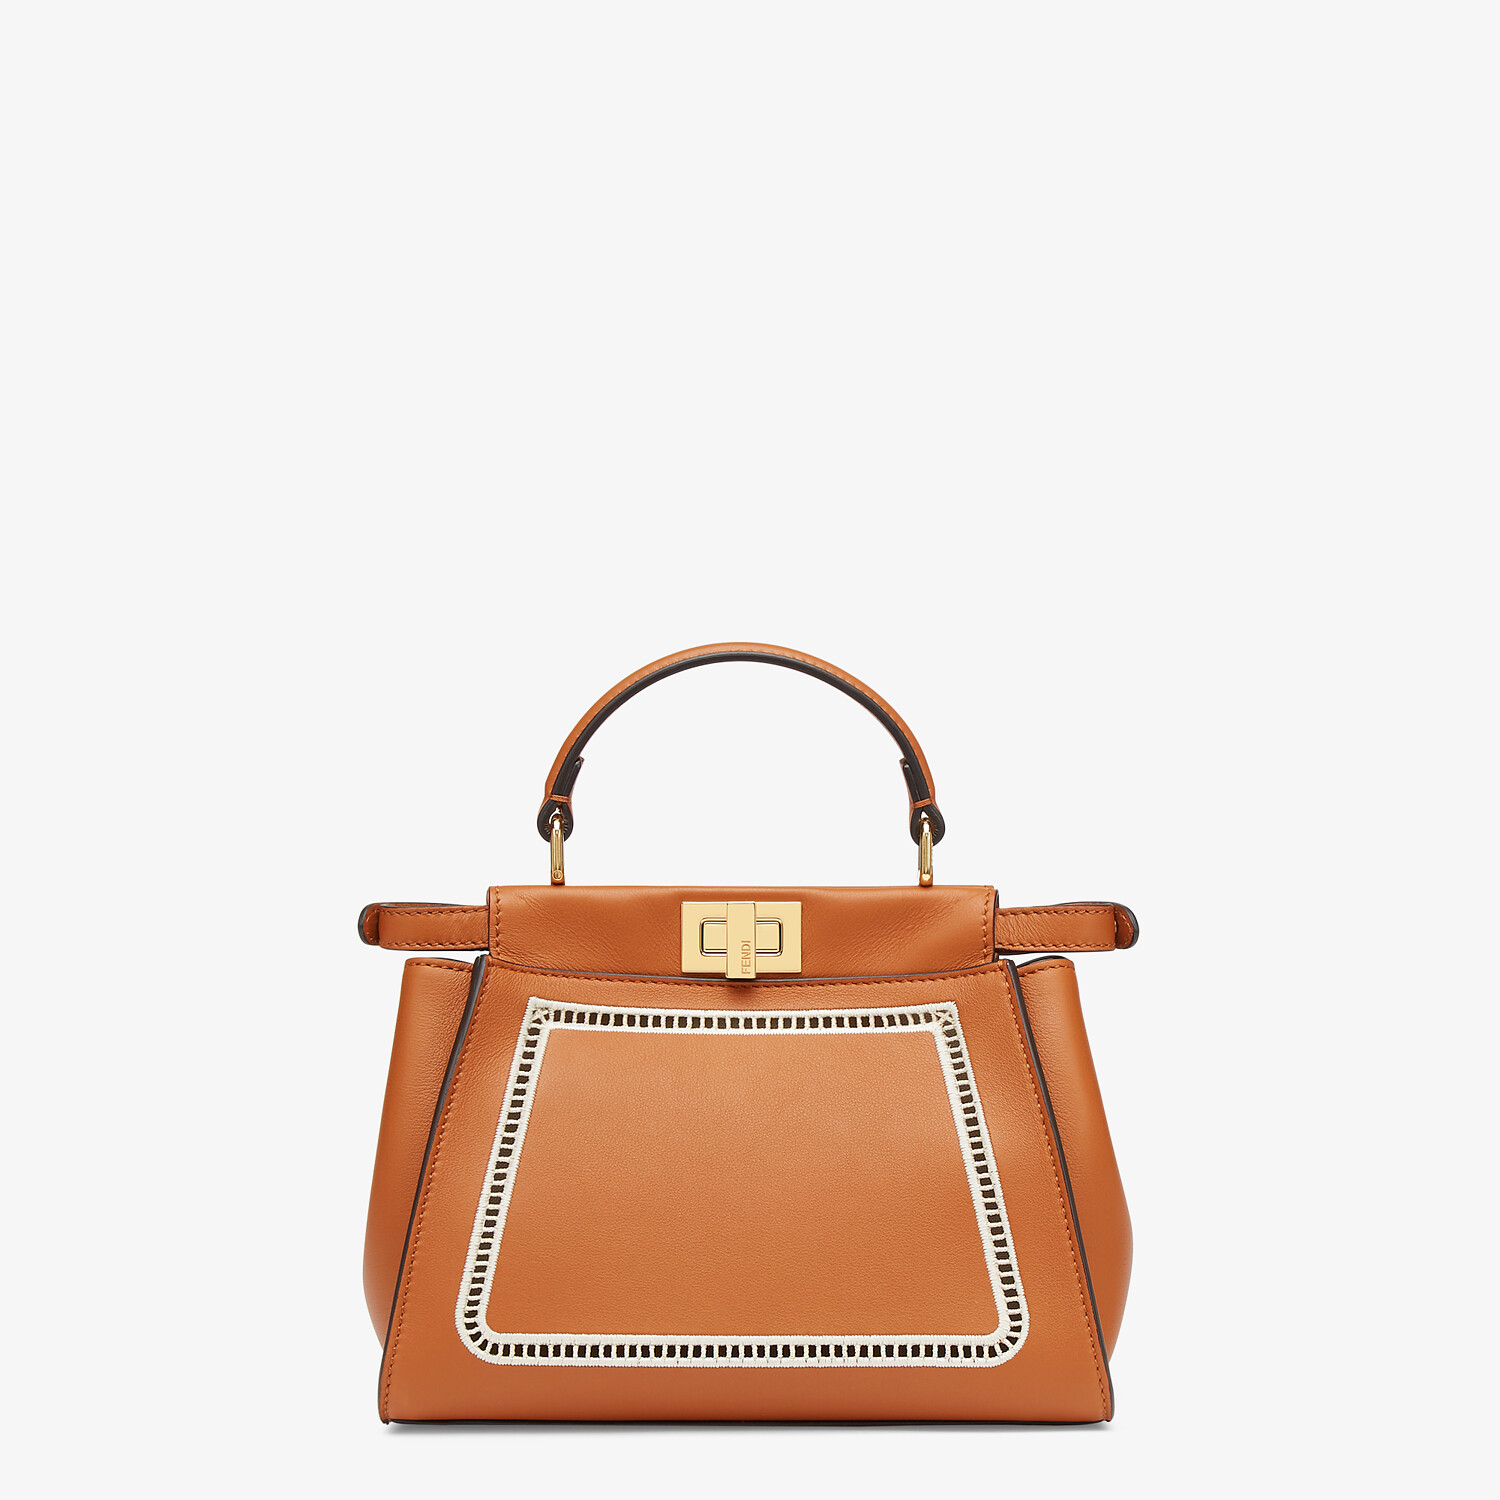 FENDI PEEKABOO ICONIC MINI - Embroidered brown leather bag - view 4 detail